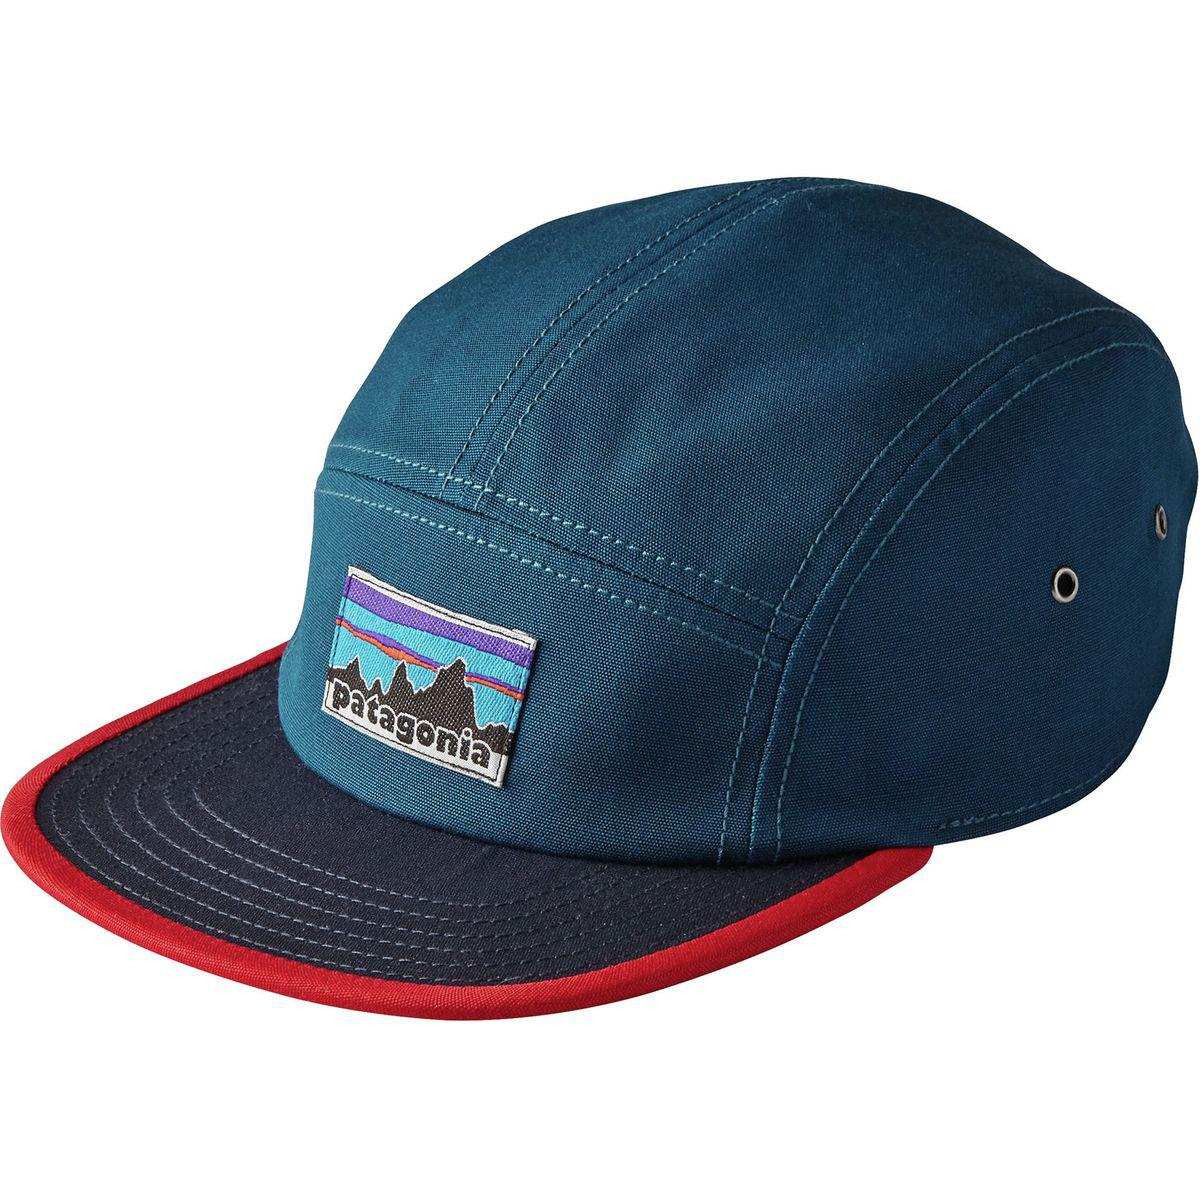 Lyst - Patagonia Retro Fitz Roy Label Tradesmith 5-panel Cap in Blue ... 6ae3ed476e1